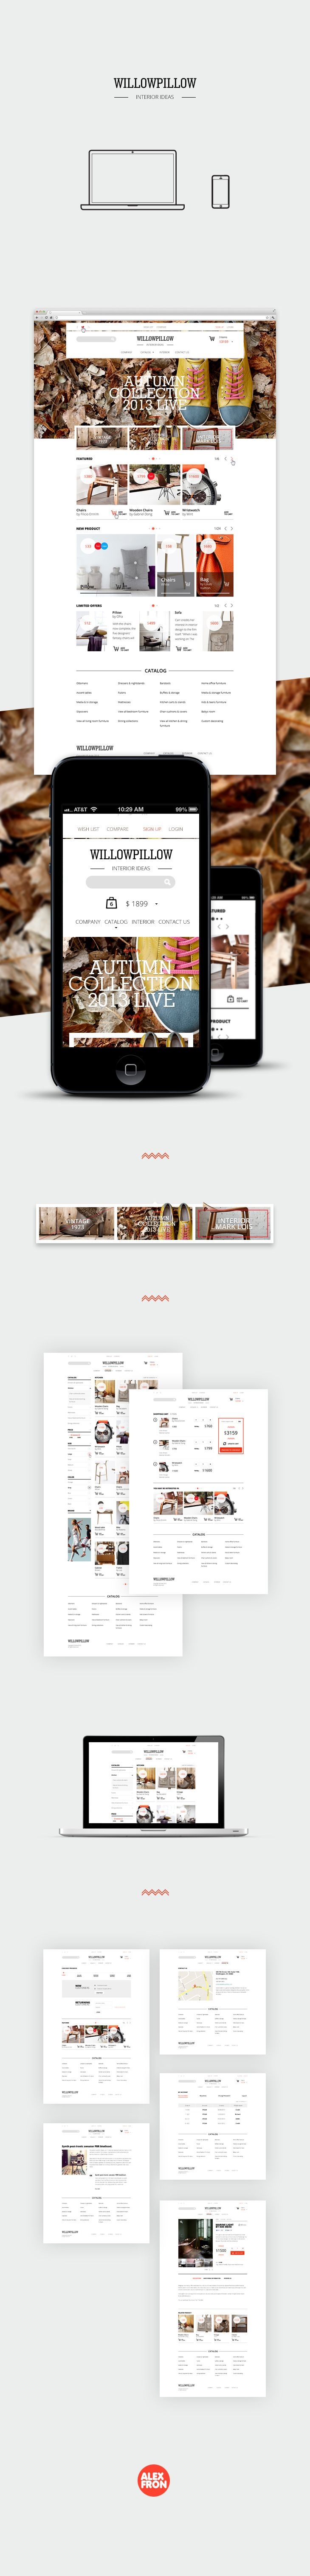 WillowPillow Interior Ideas #webdesign